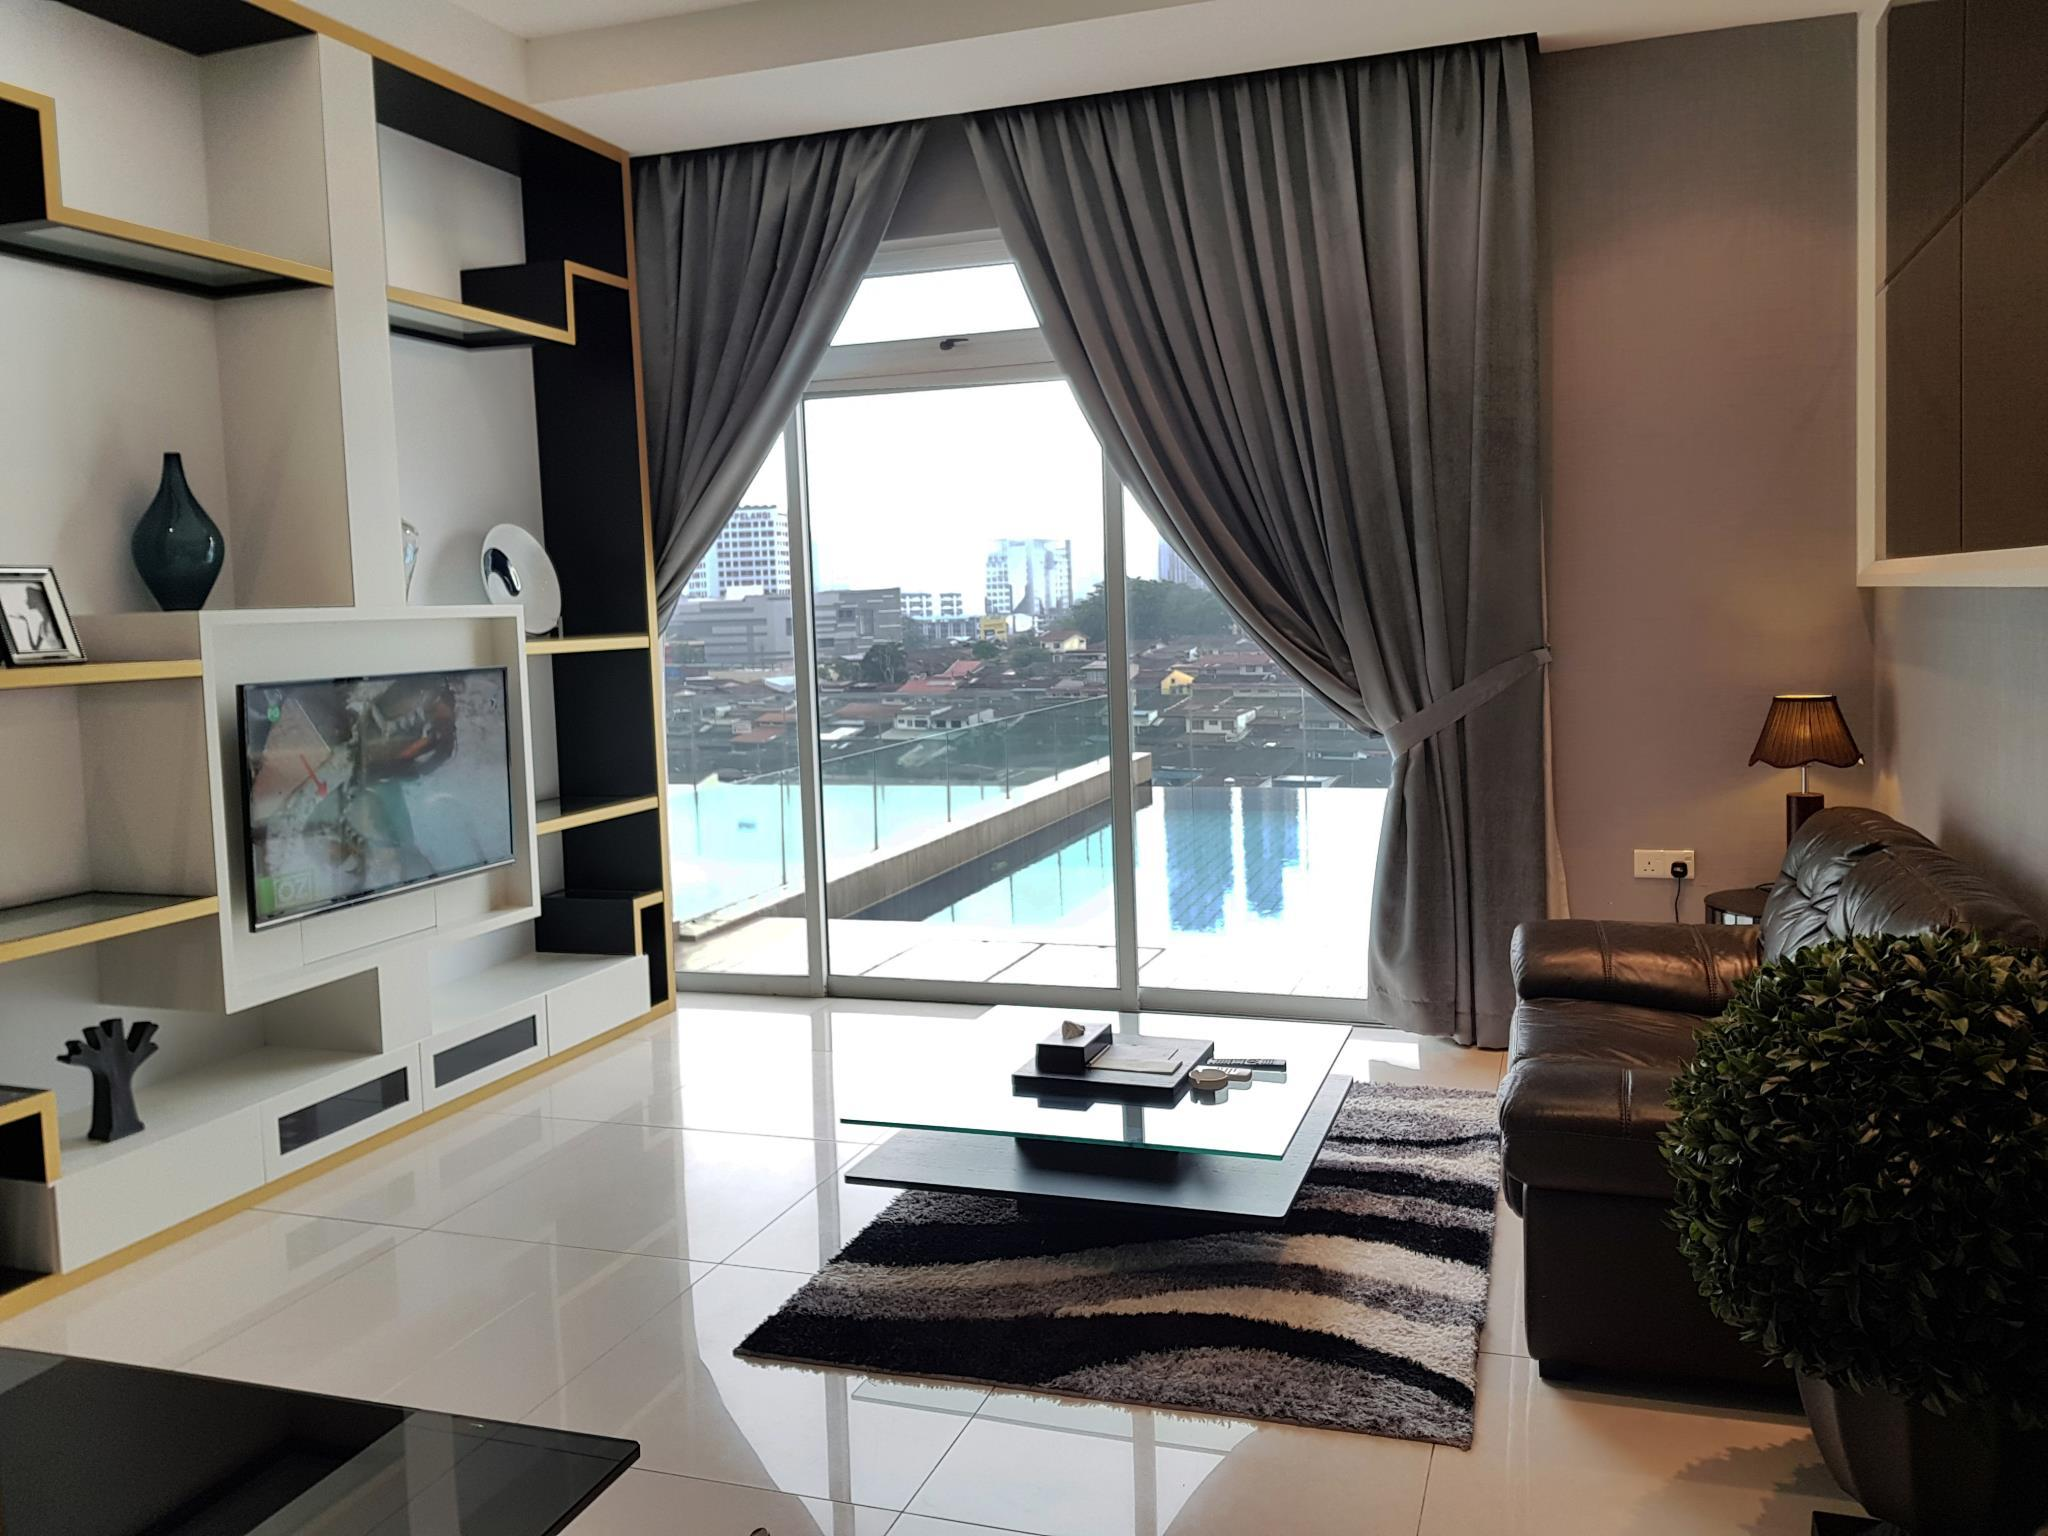 2-Bedroom Premier Apartment with 1 King Bed, 1 Single Bed and Private Pool